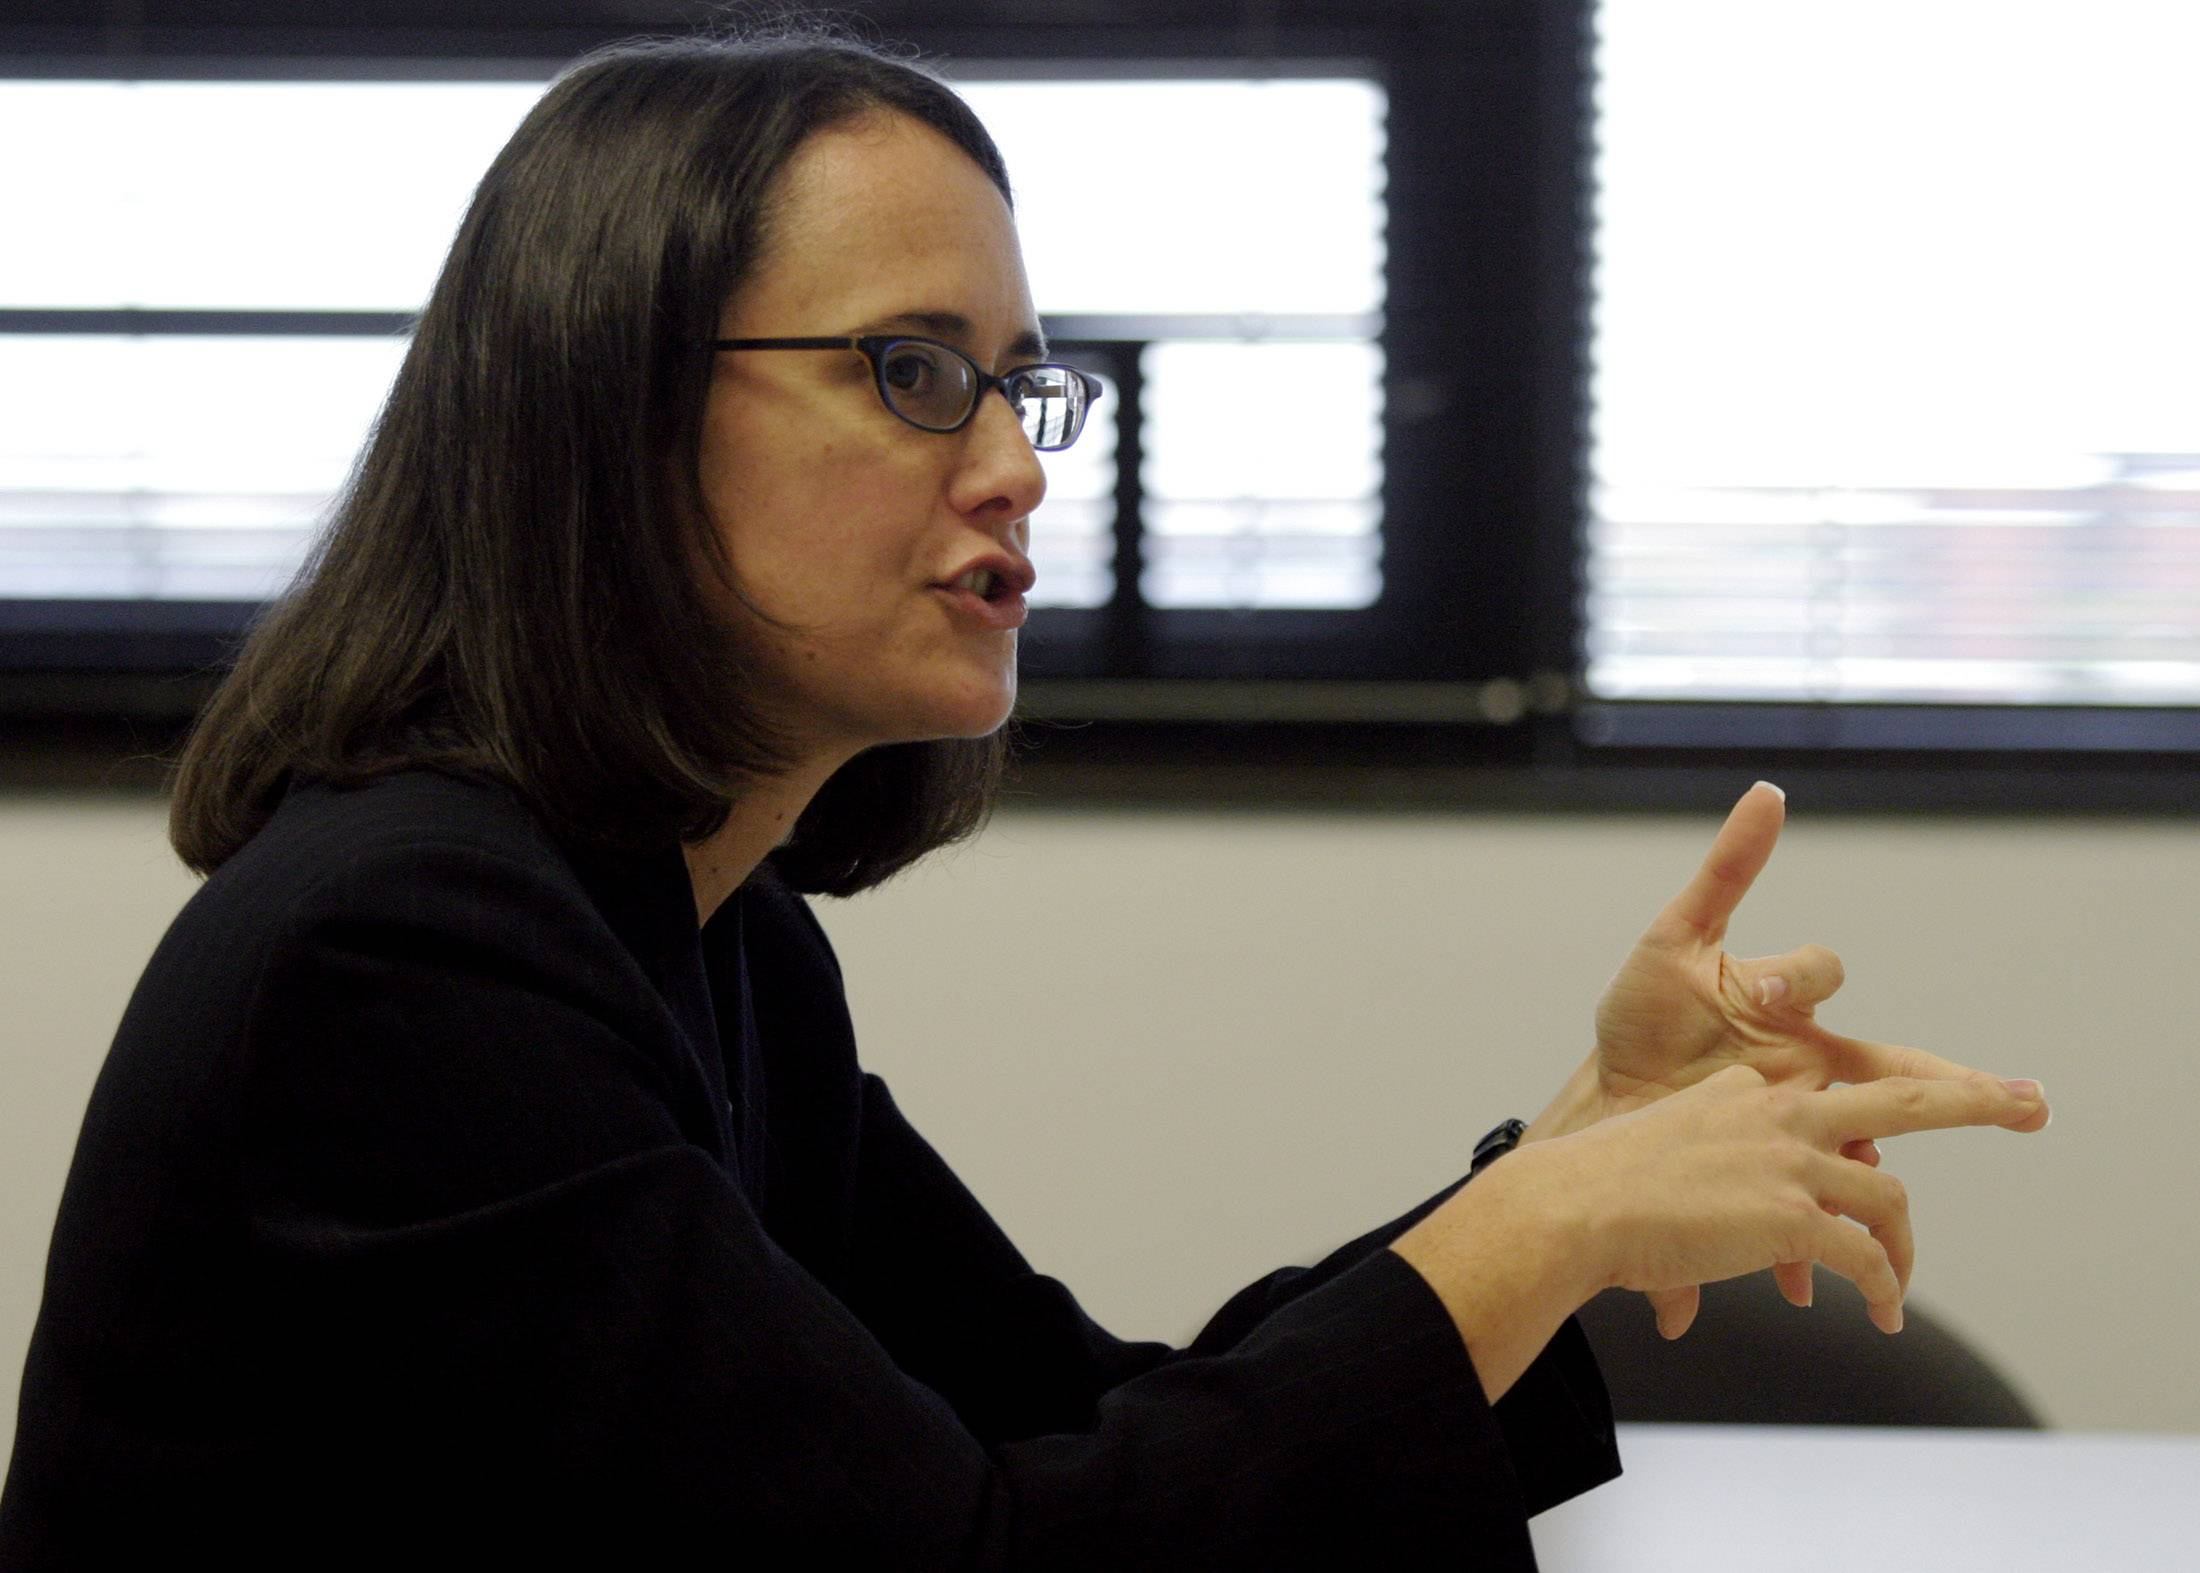 Illinois Attorney General Lisa Madigan has announced her office collected nearly $1 billion in revenue last year.